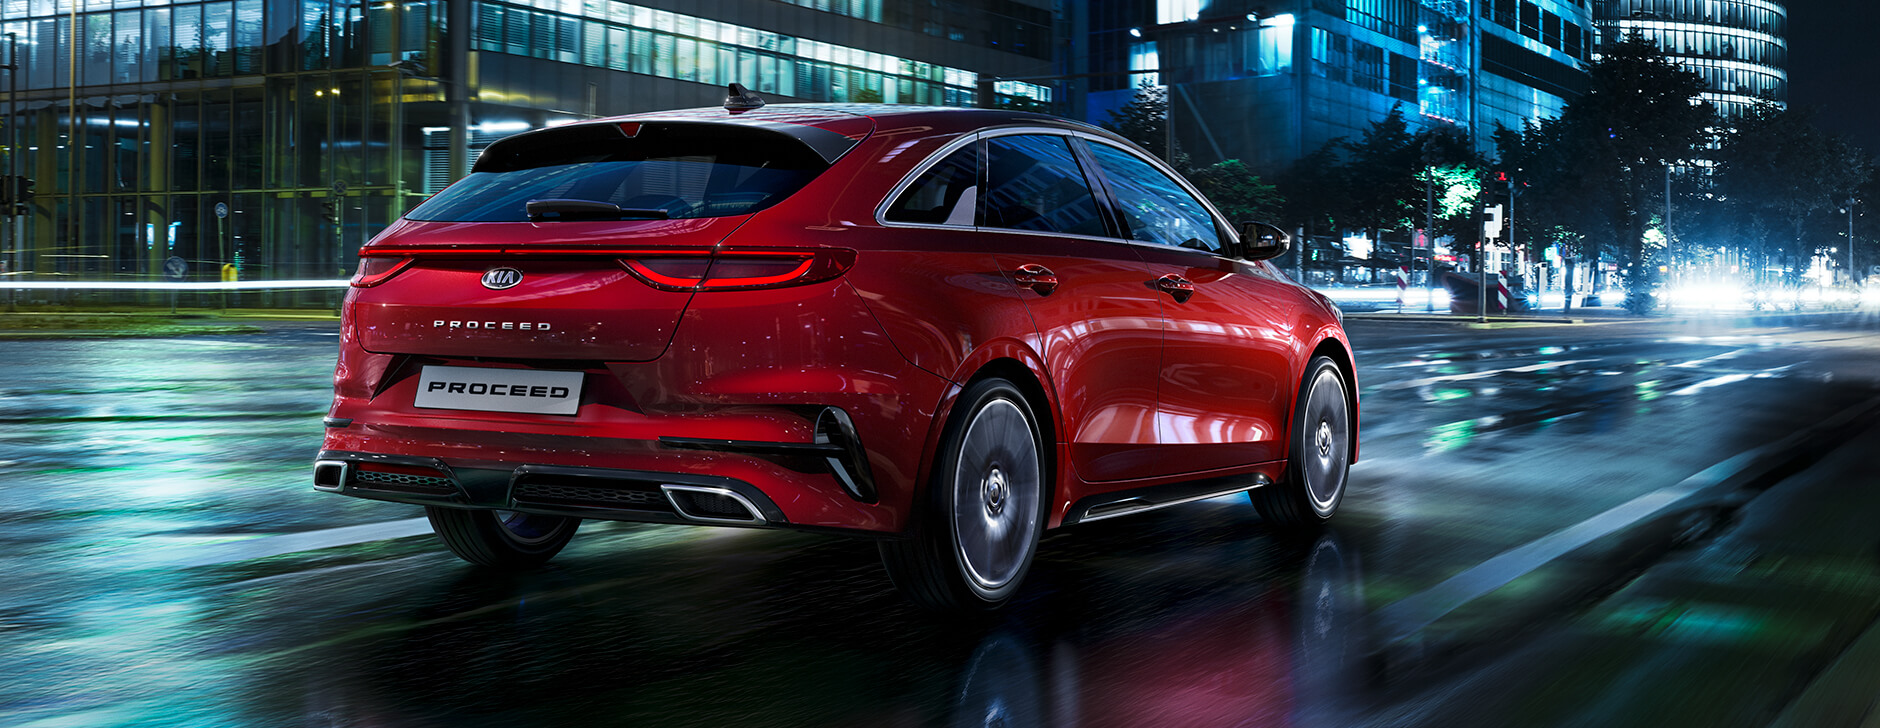 Kia Proceed rear